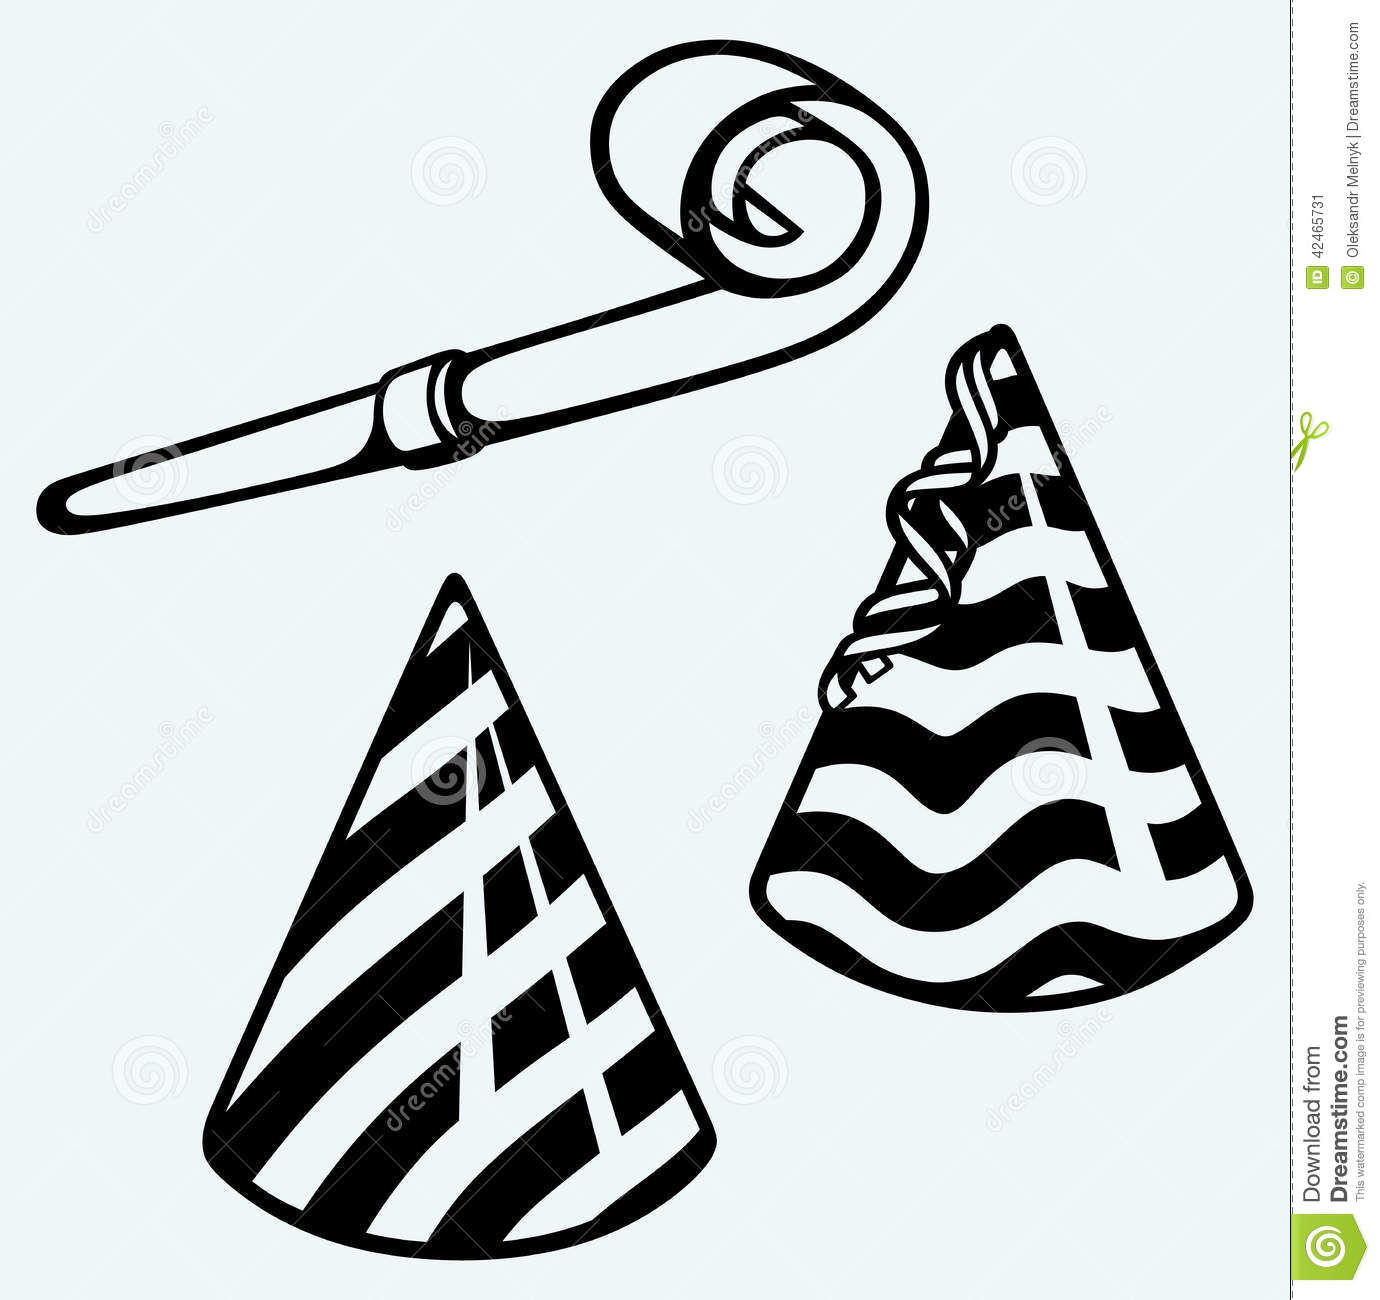 Noise clipart black and white Noise Download White White And